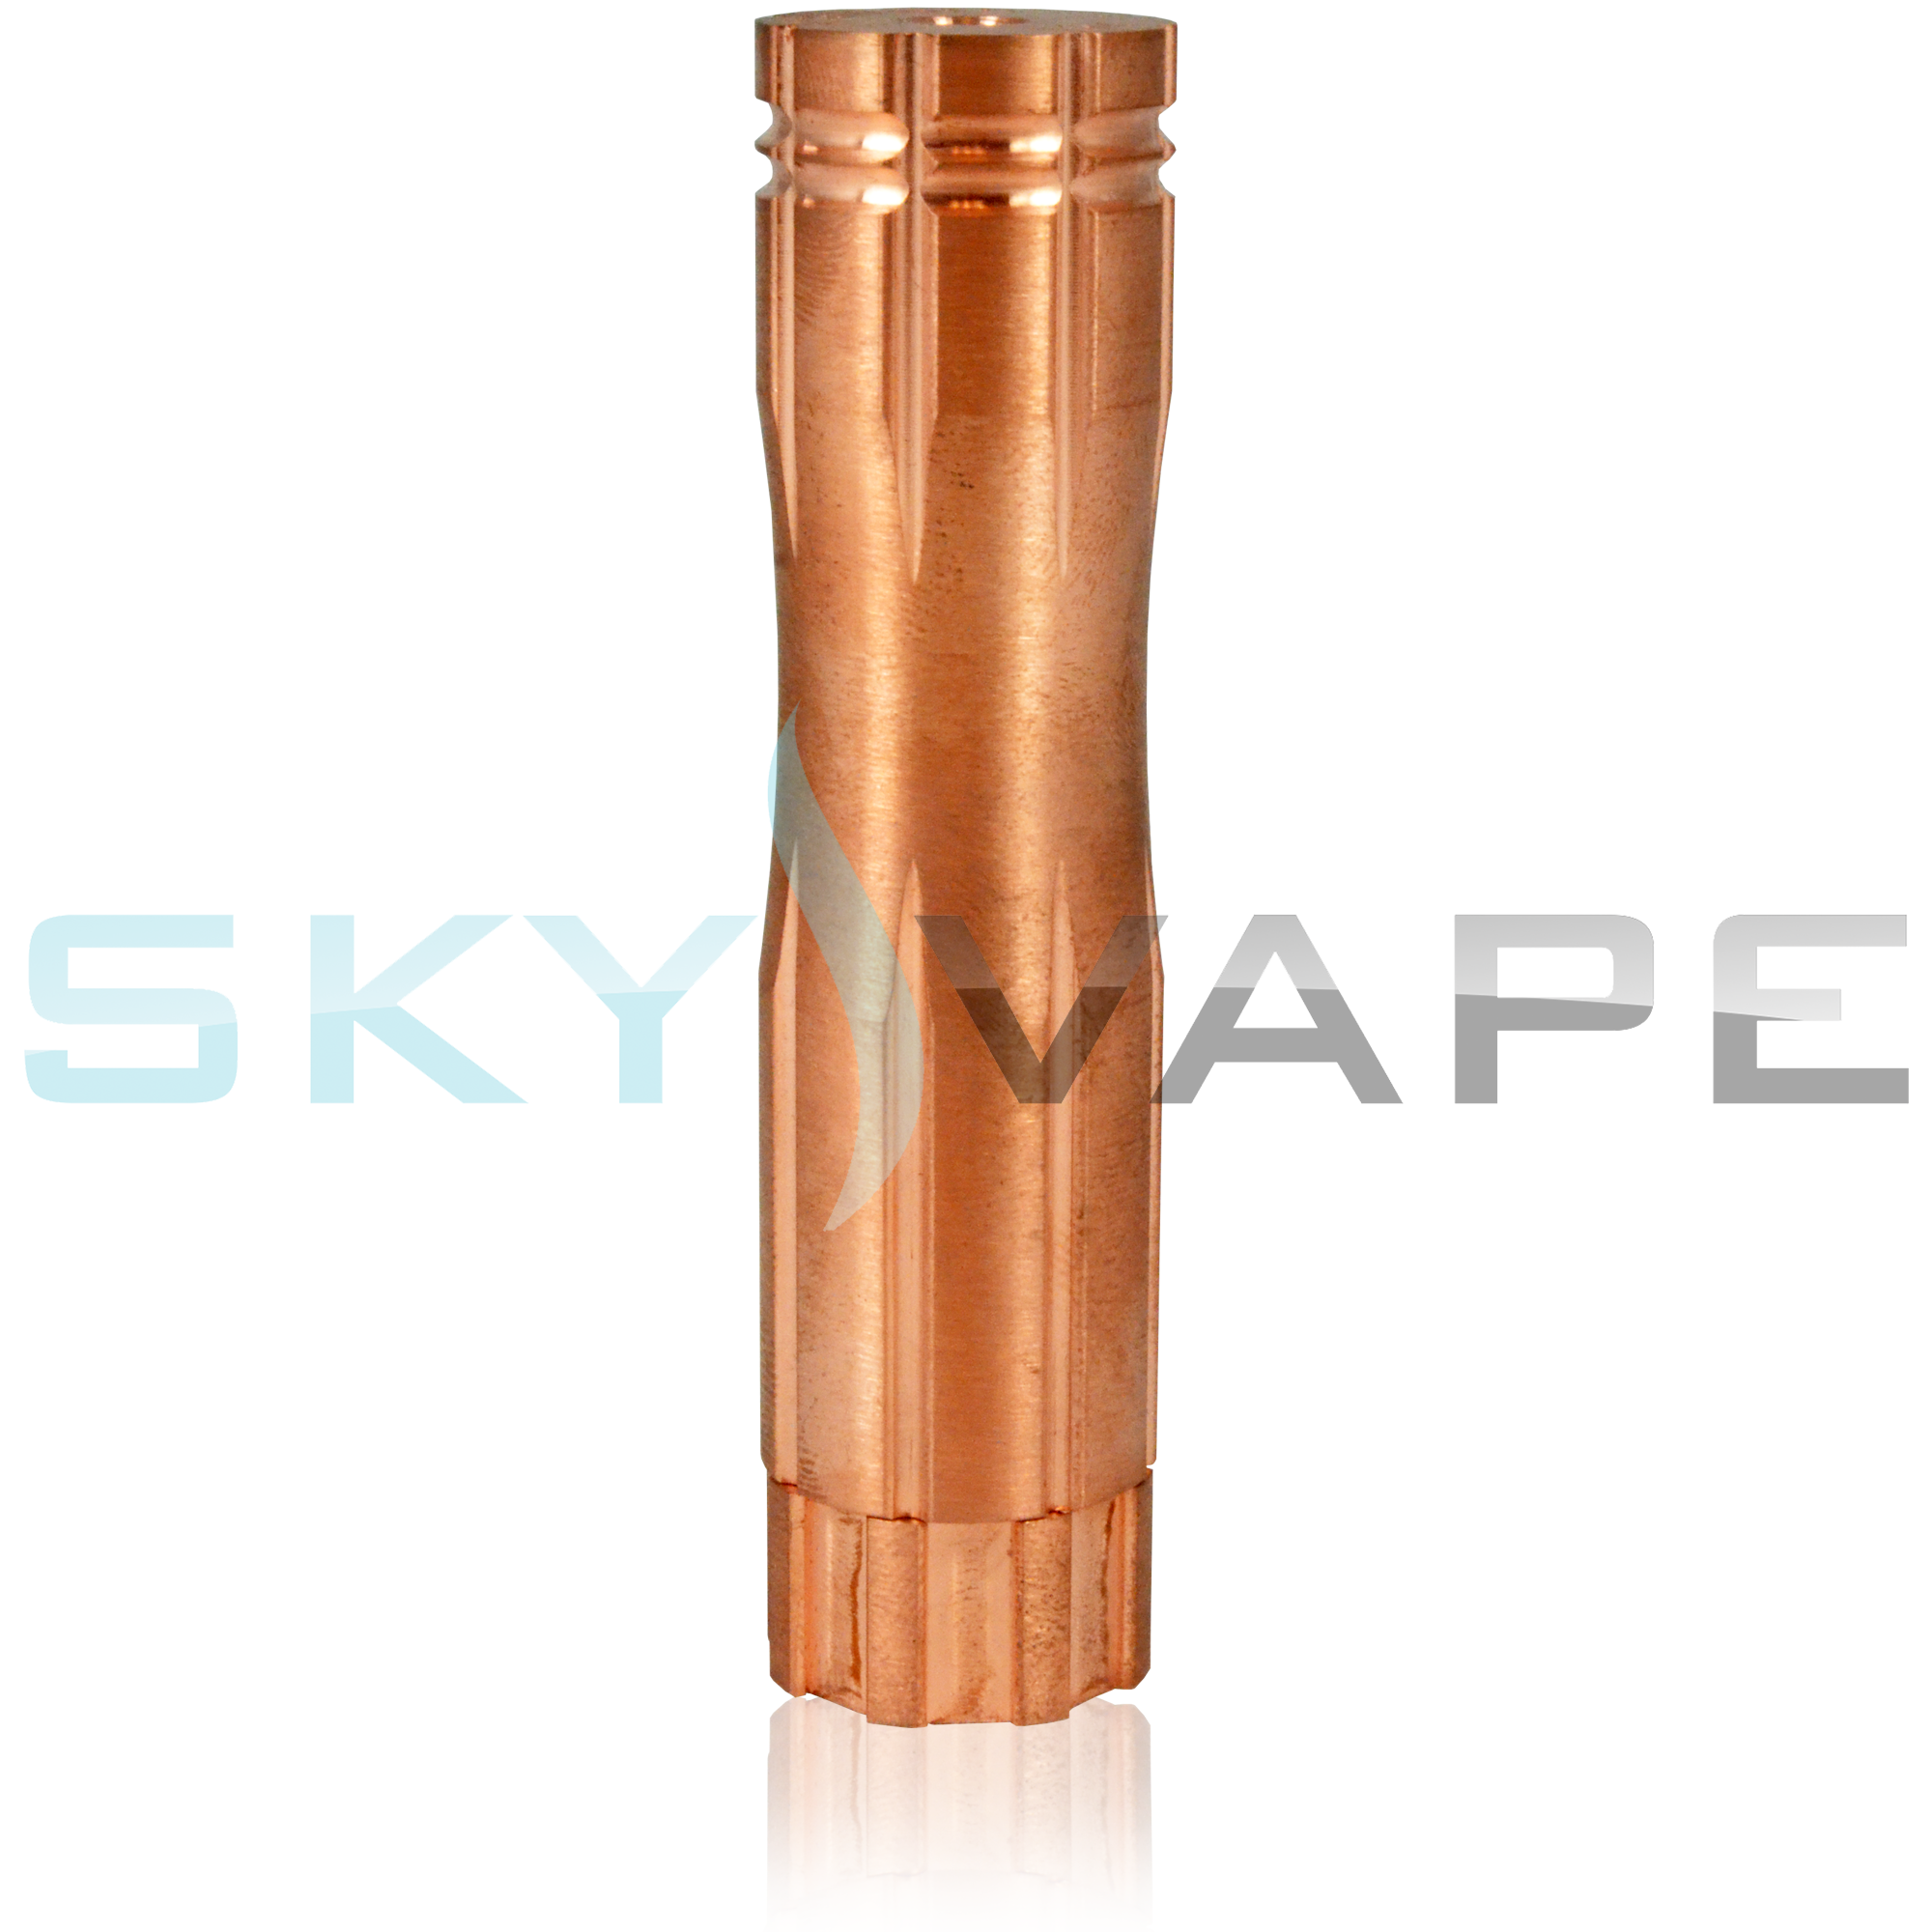 Armageddon MFG Aftermath Mech Mod